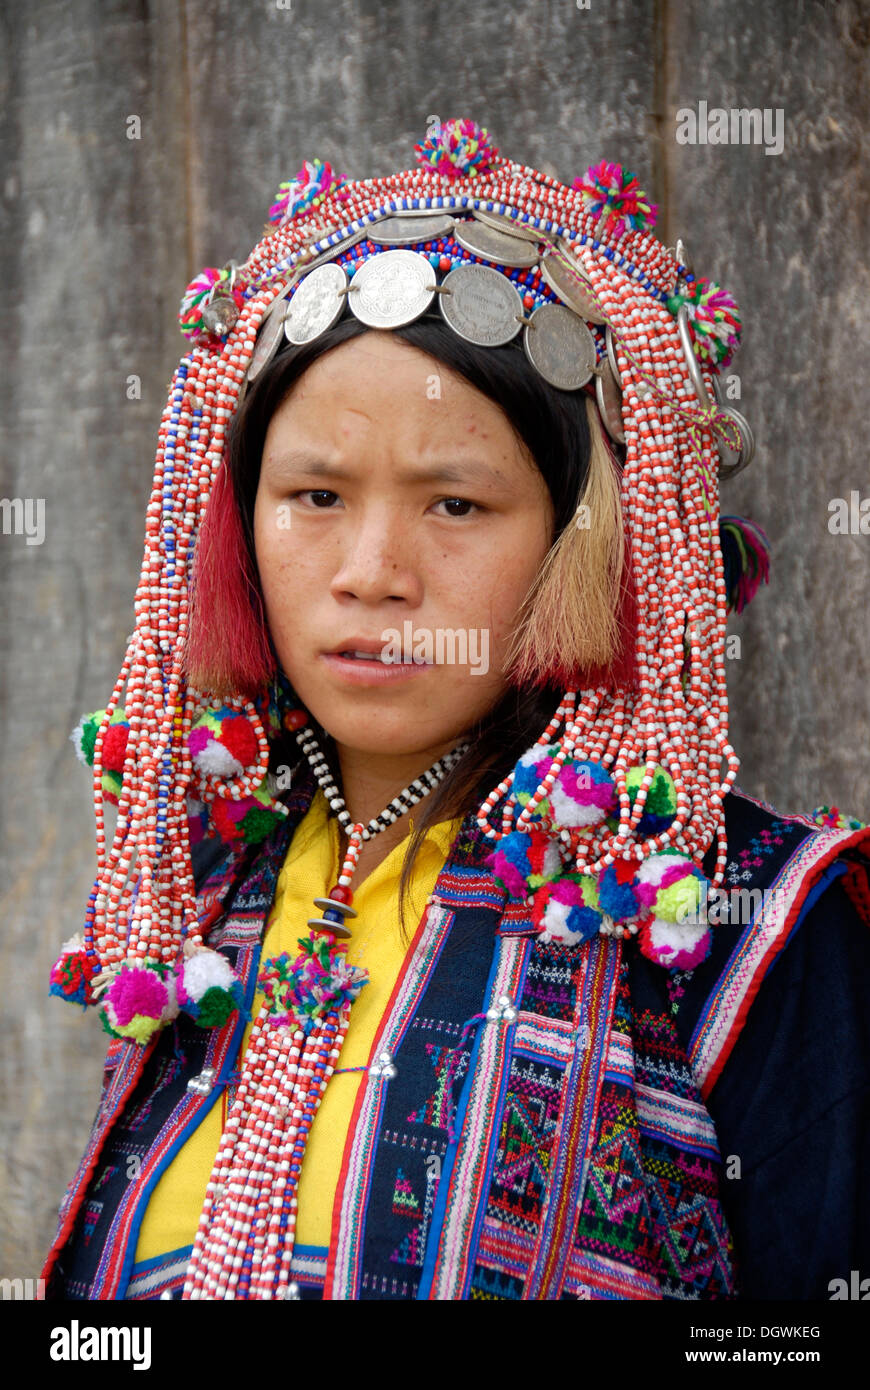 Portrait, woman of the Ya-Er Akha ethnic group, traditional clothing, colorful headdress with silver coins - Stock Image